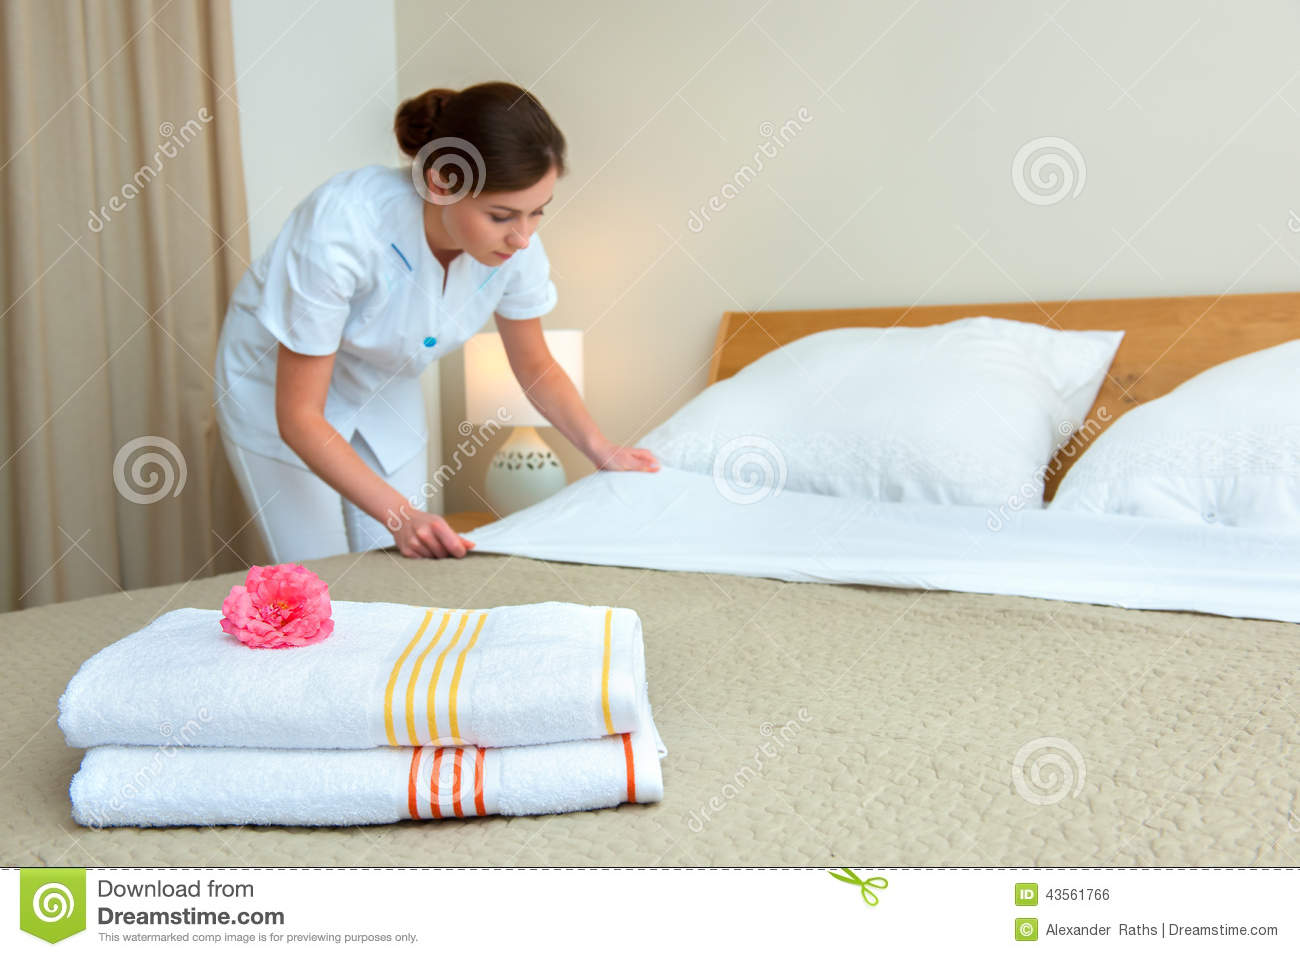 Maid Making Bed In Hotel Room Stock Photo Image 43561766